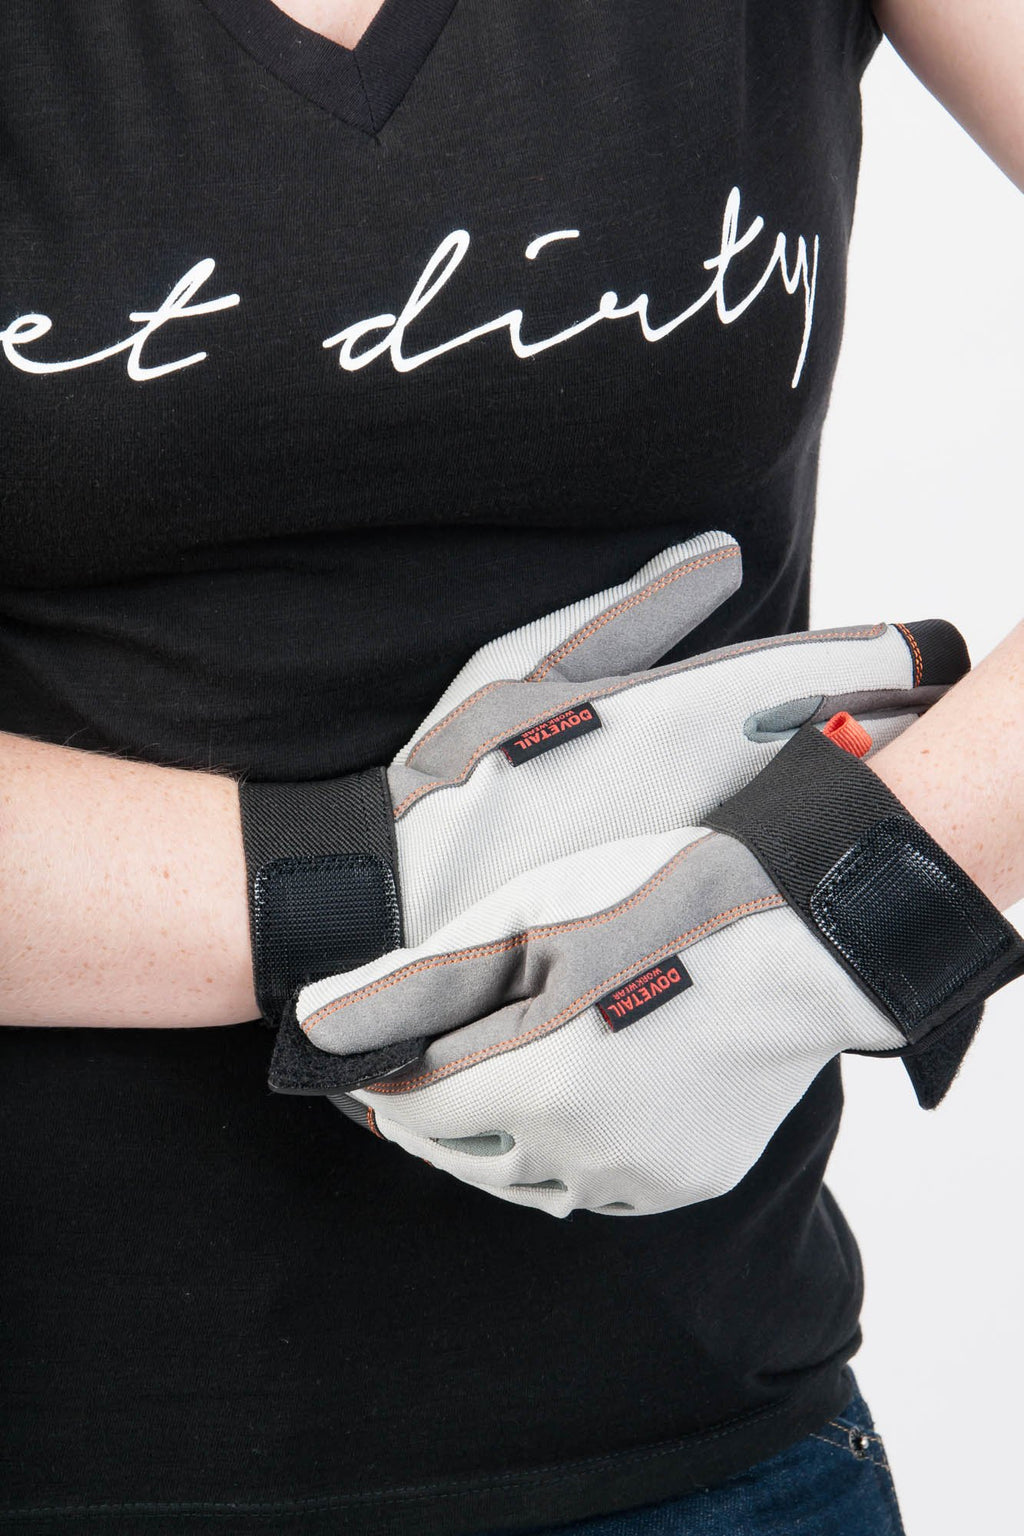 Multi-Purpose Work Glove